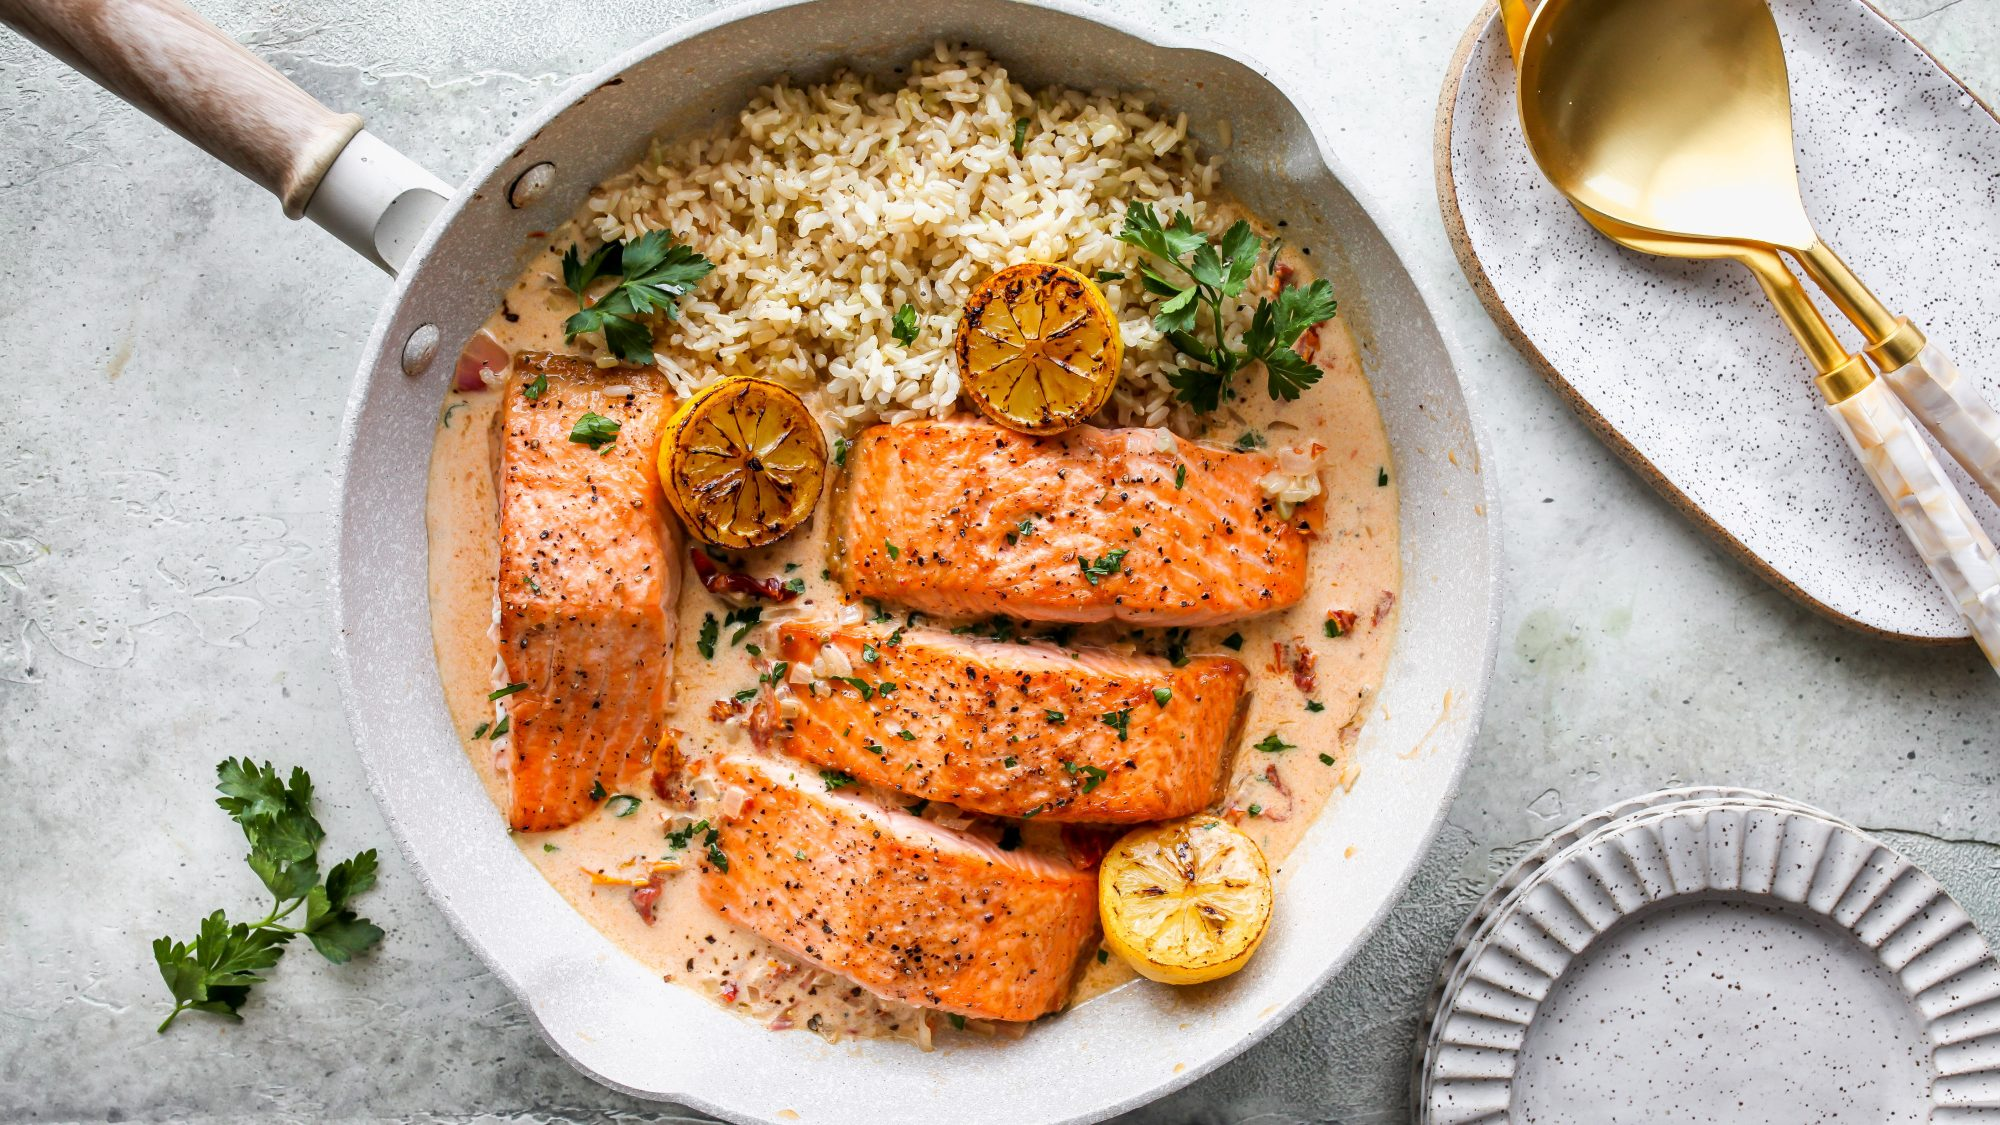 Salmon with Sun-Dried Tomato Cream Sauce